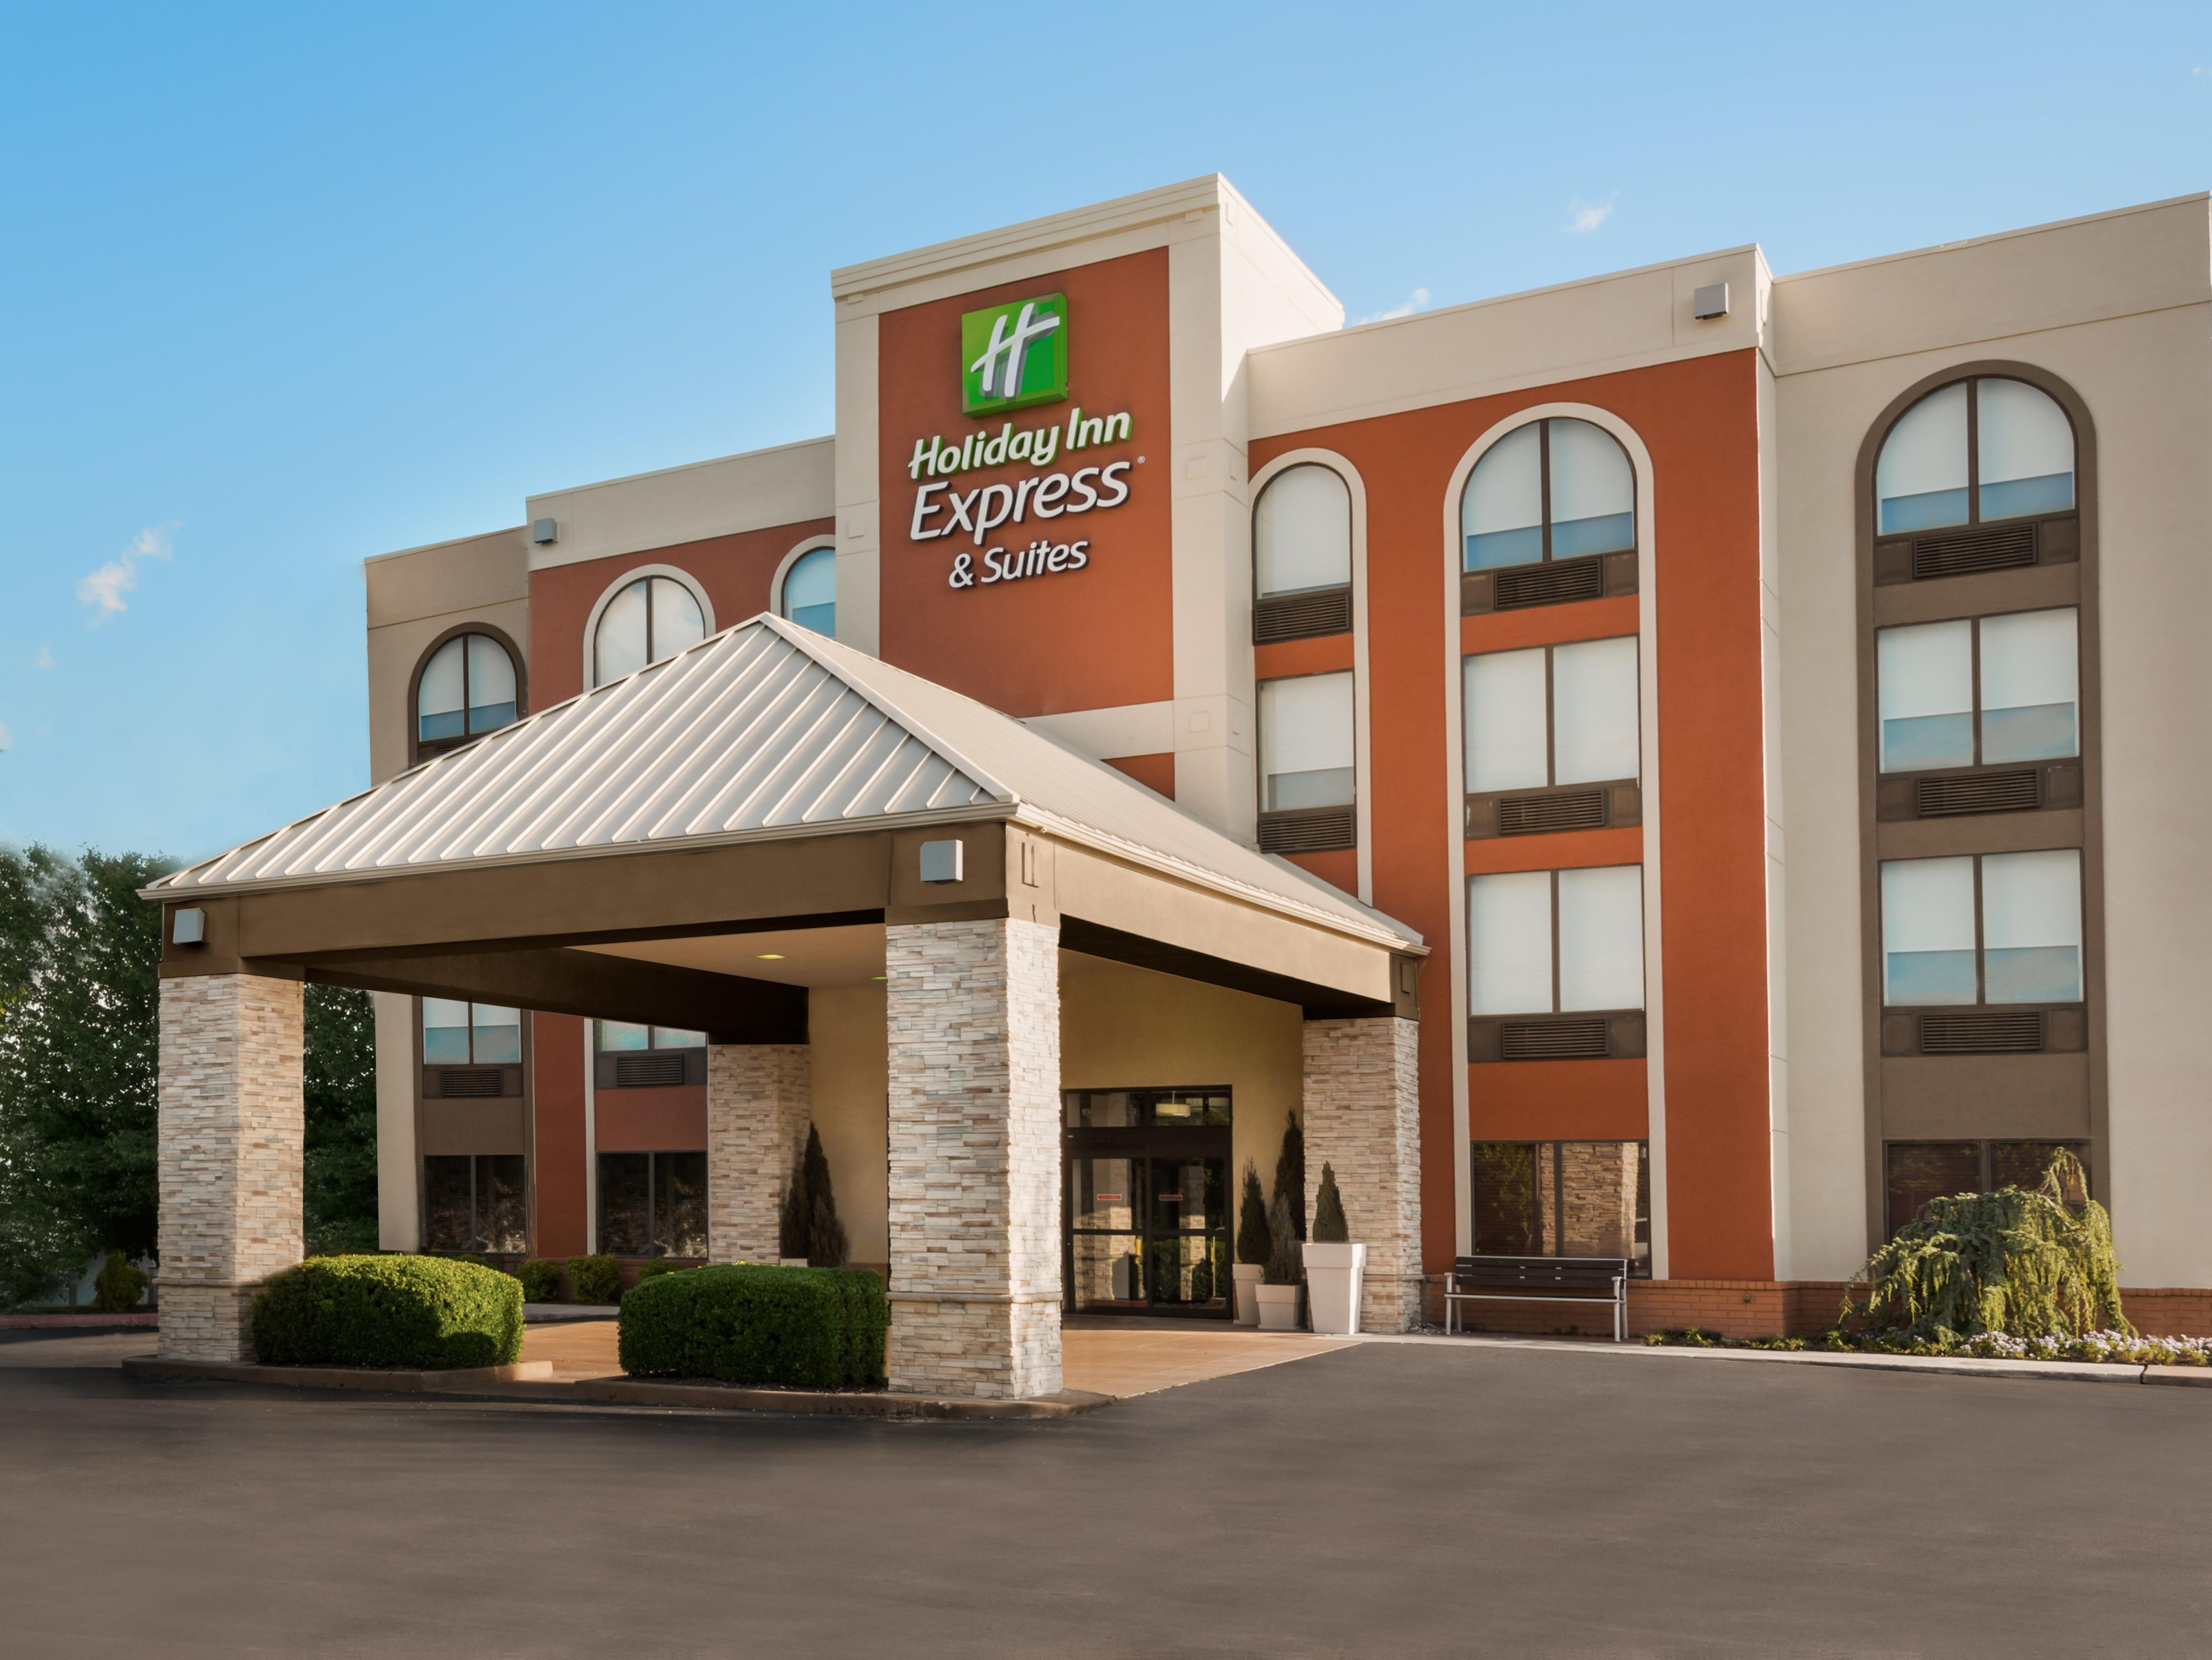 Holiday Inn Express & Suites Bentonville Hotel by IHG